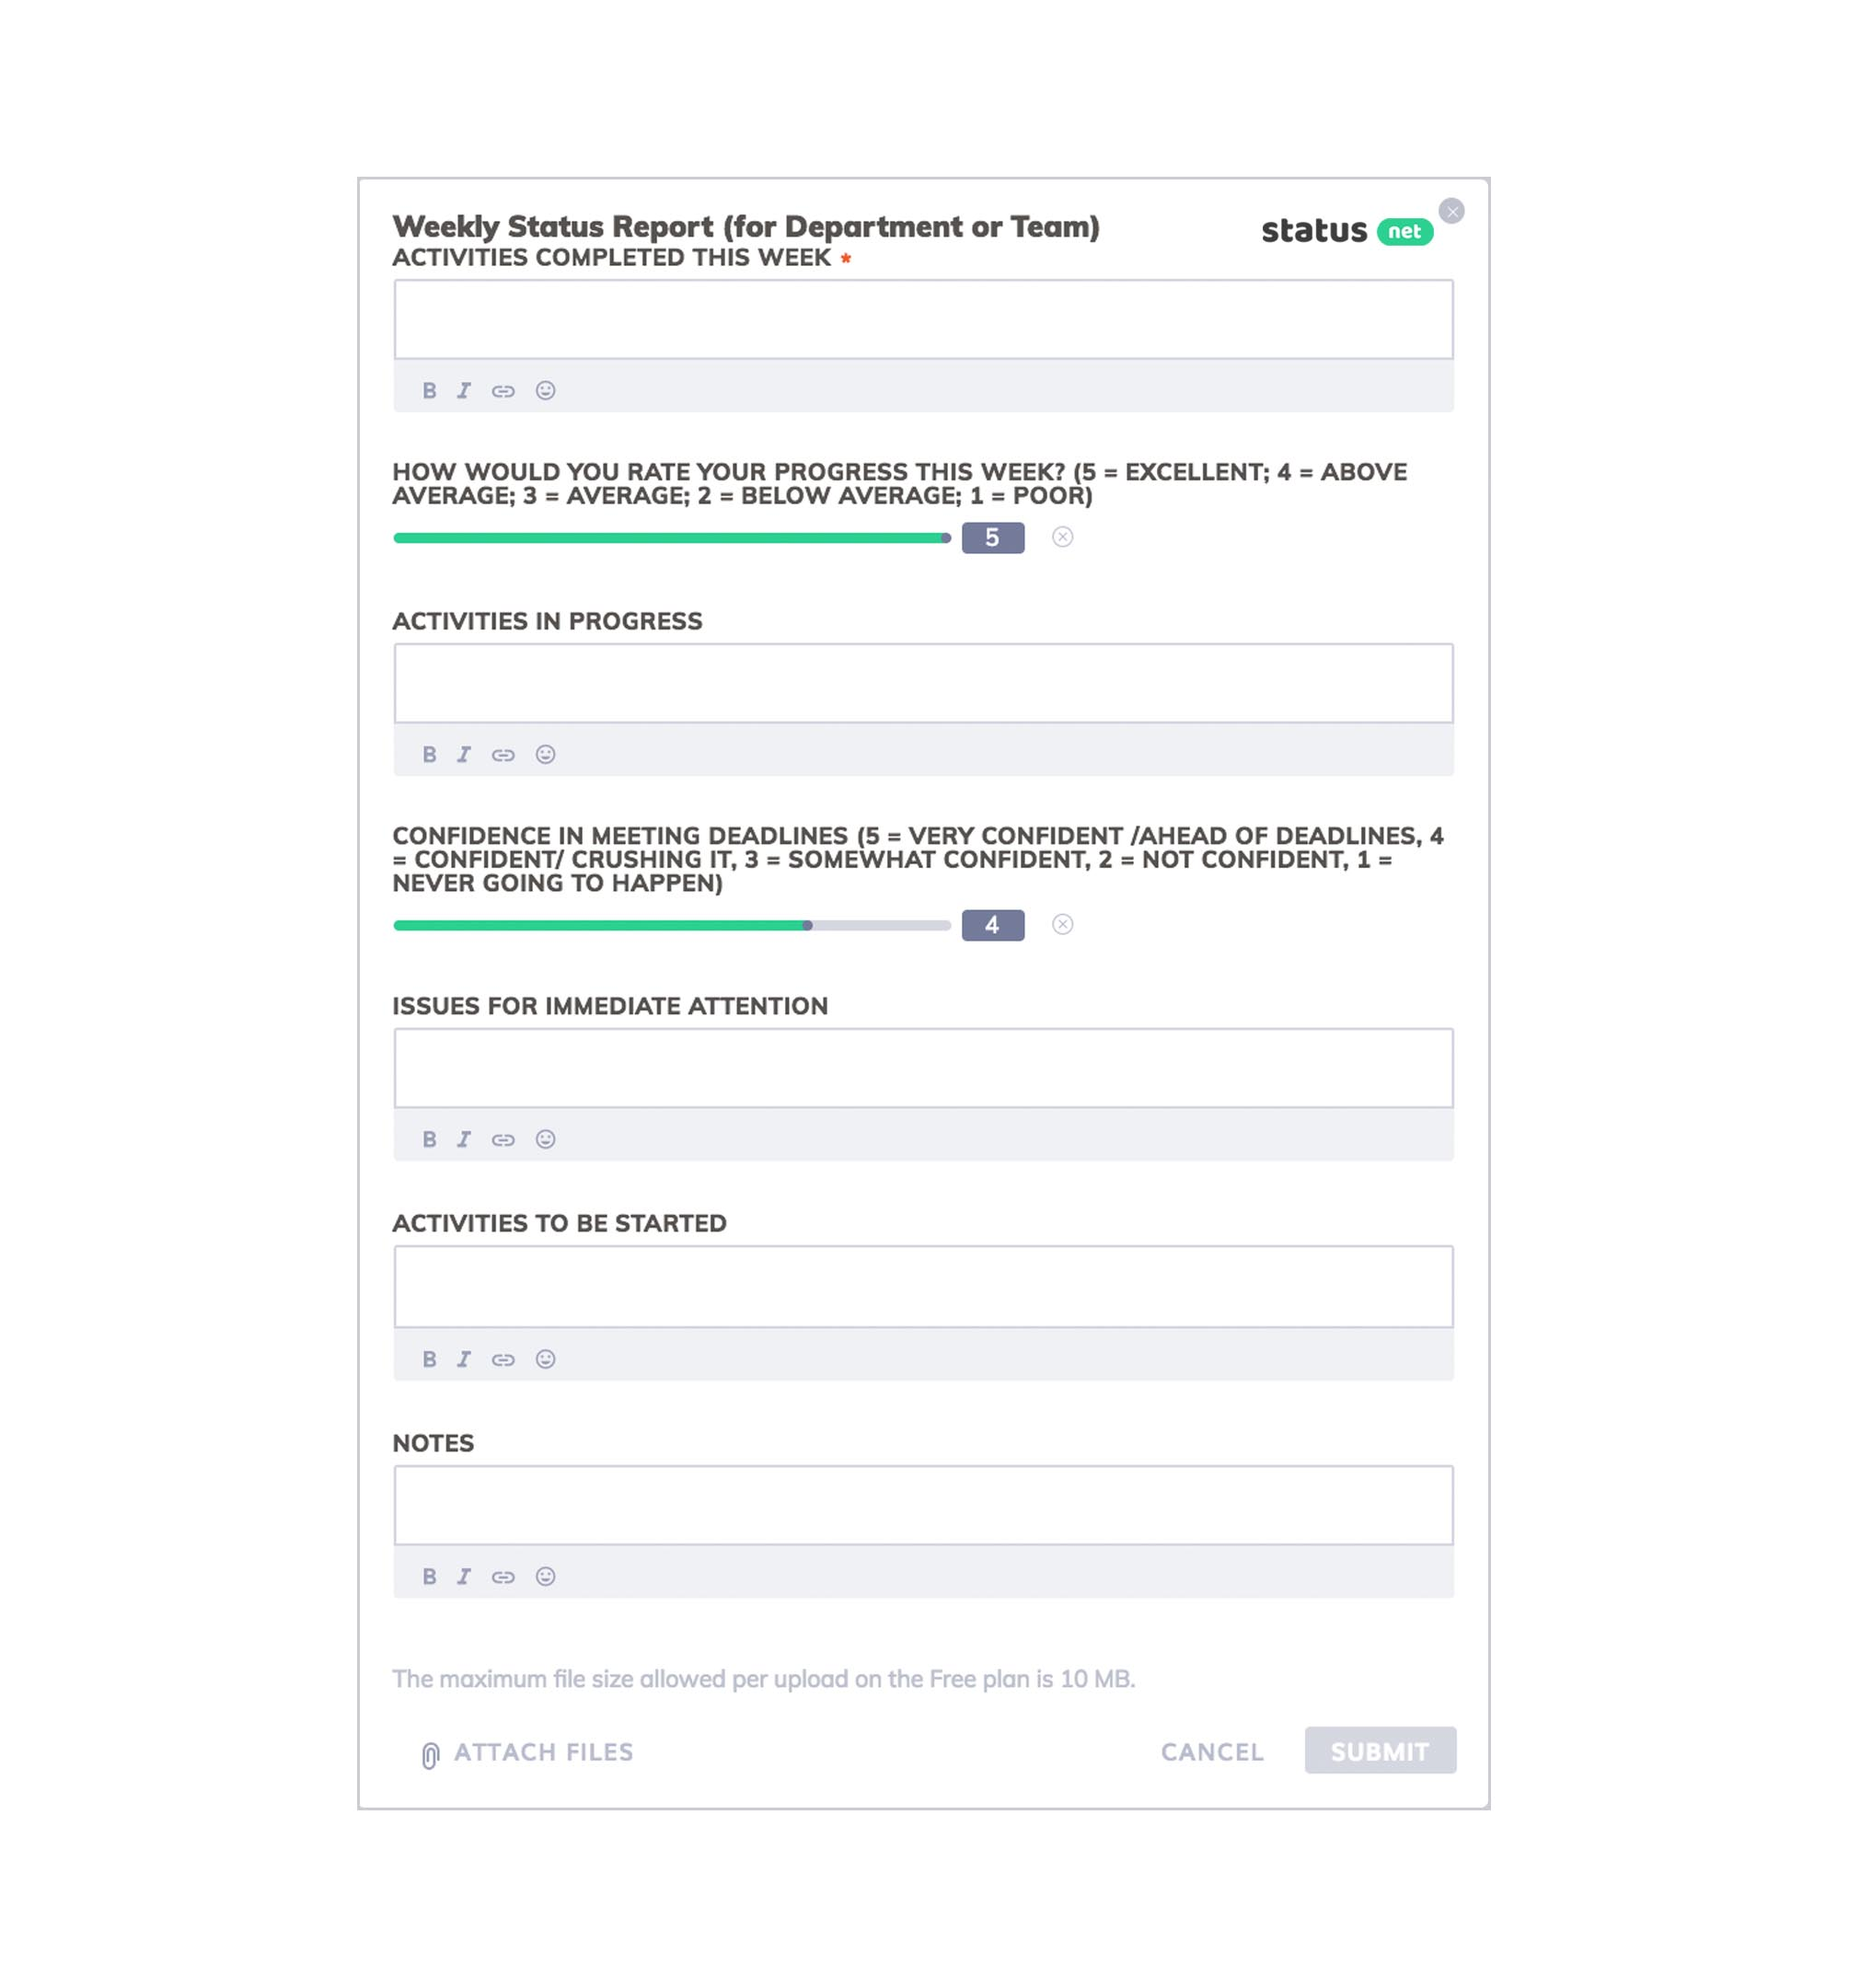 weekly status report form template